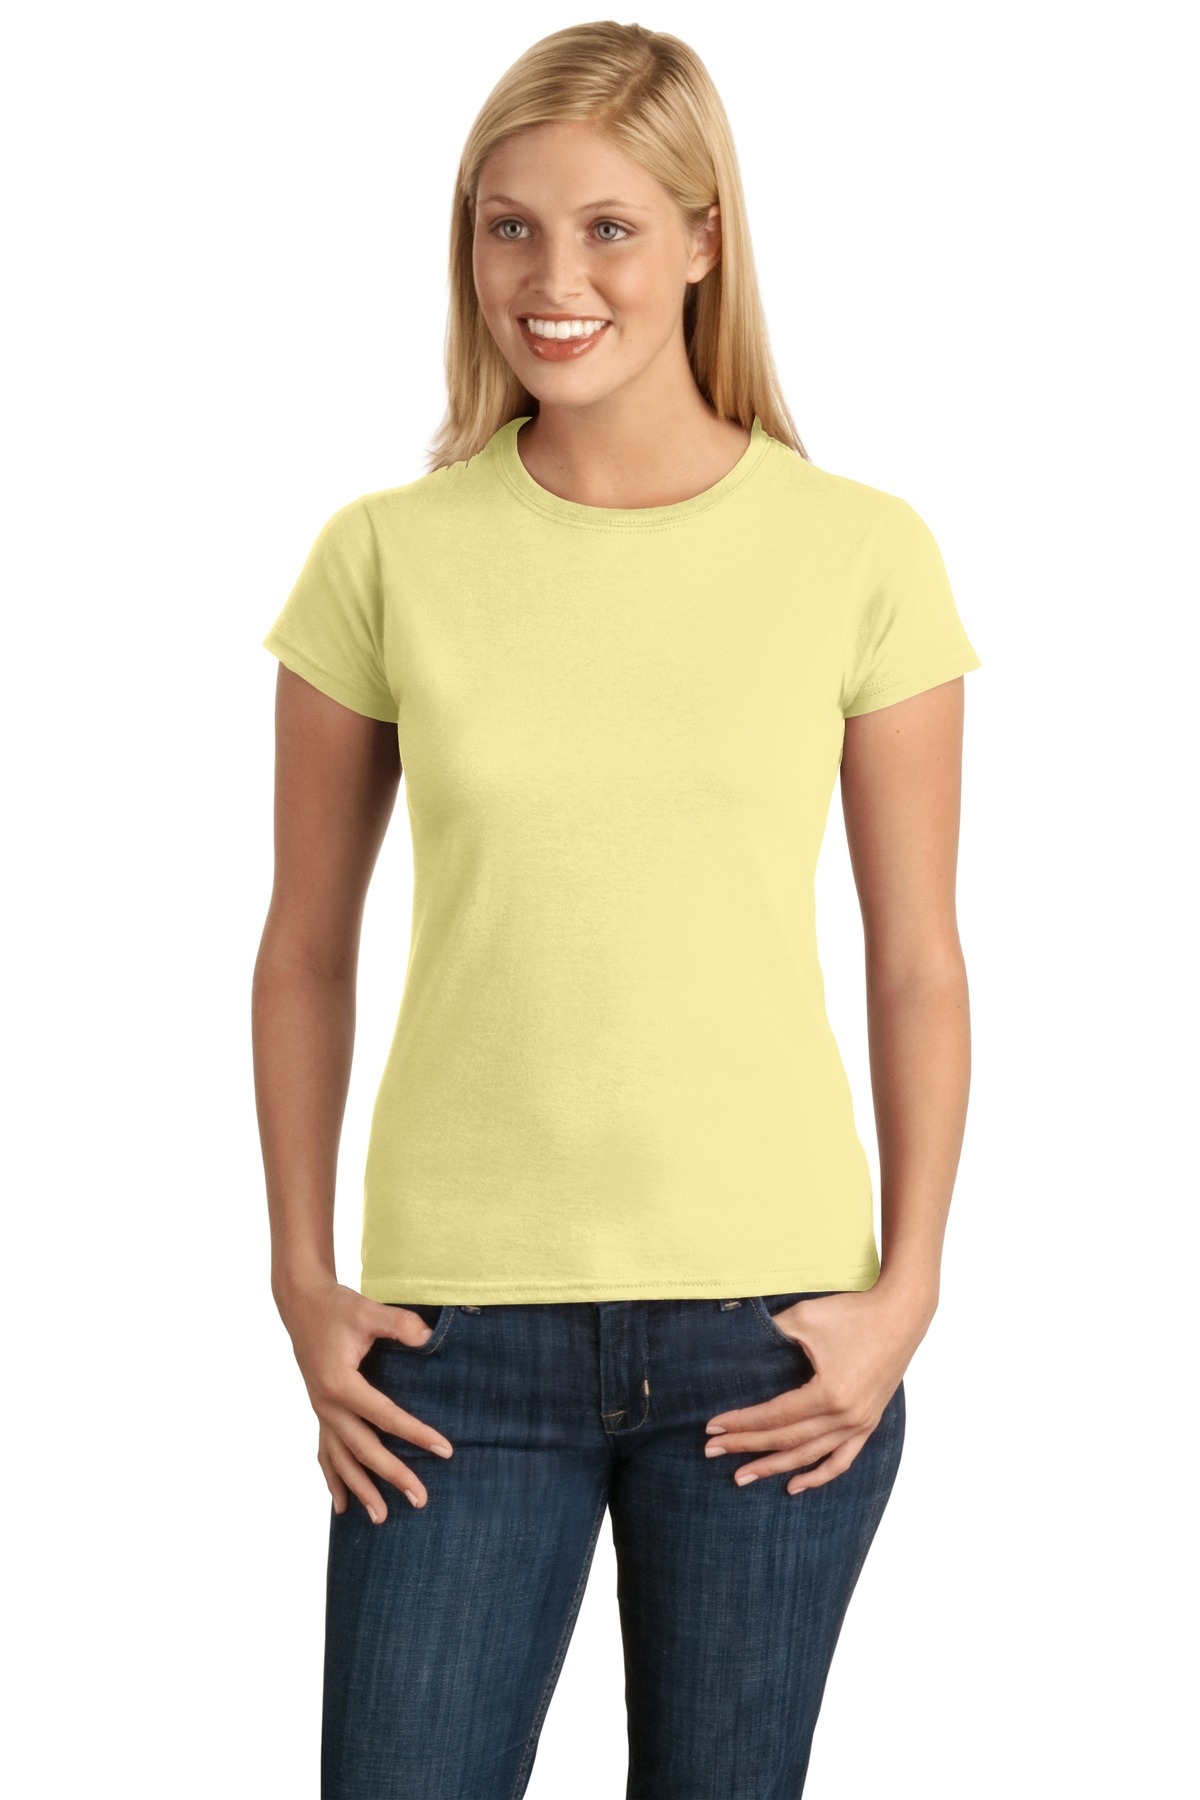 Gildan Softstyle ®  Ladies T-Shirt. 64000L - Corn Silk